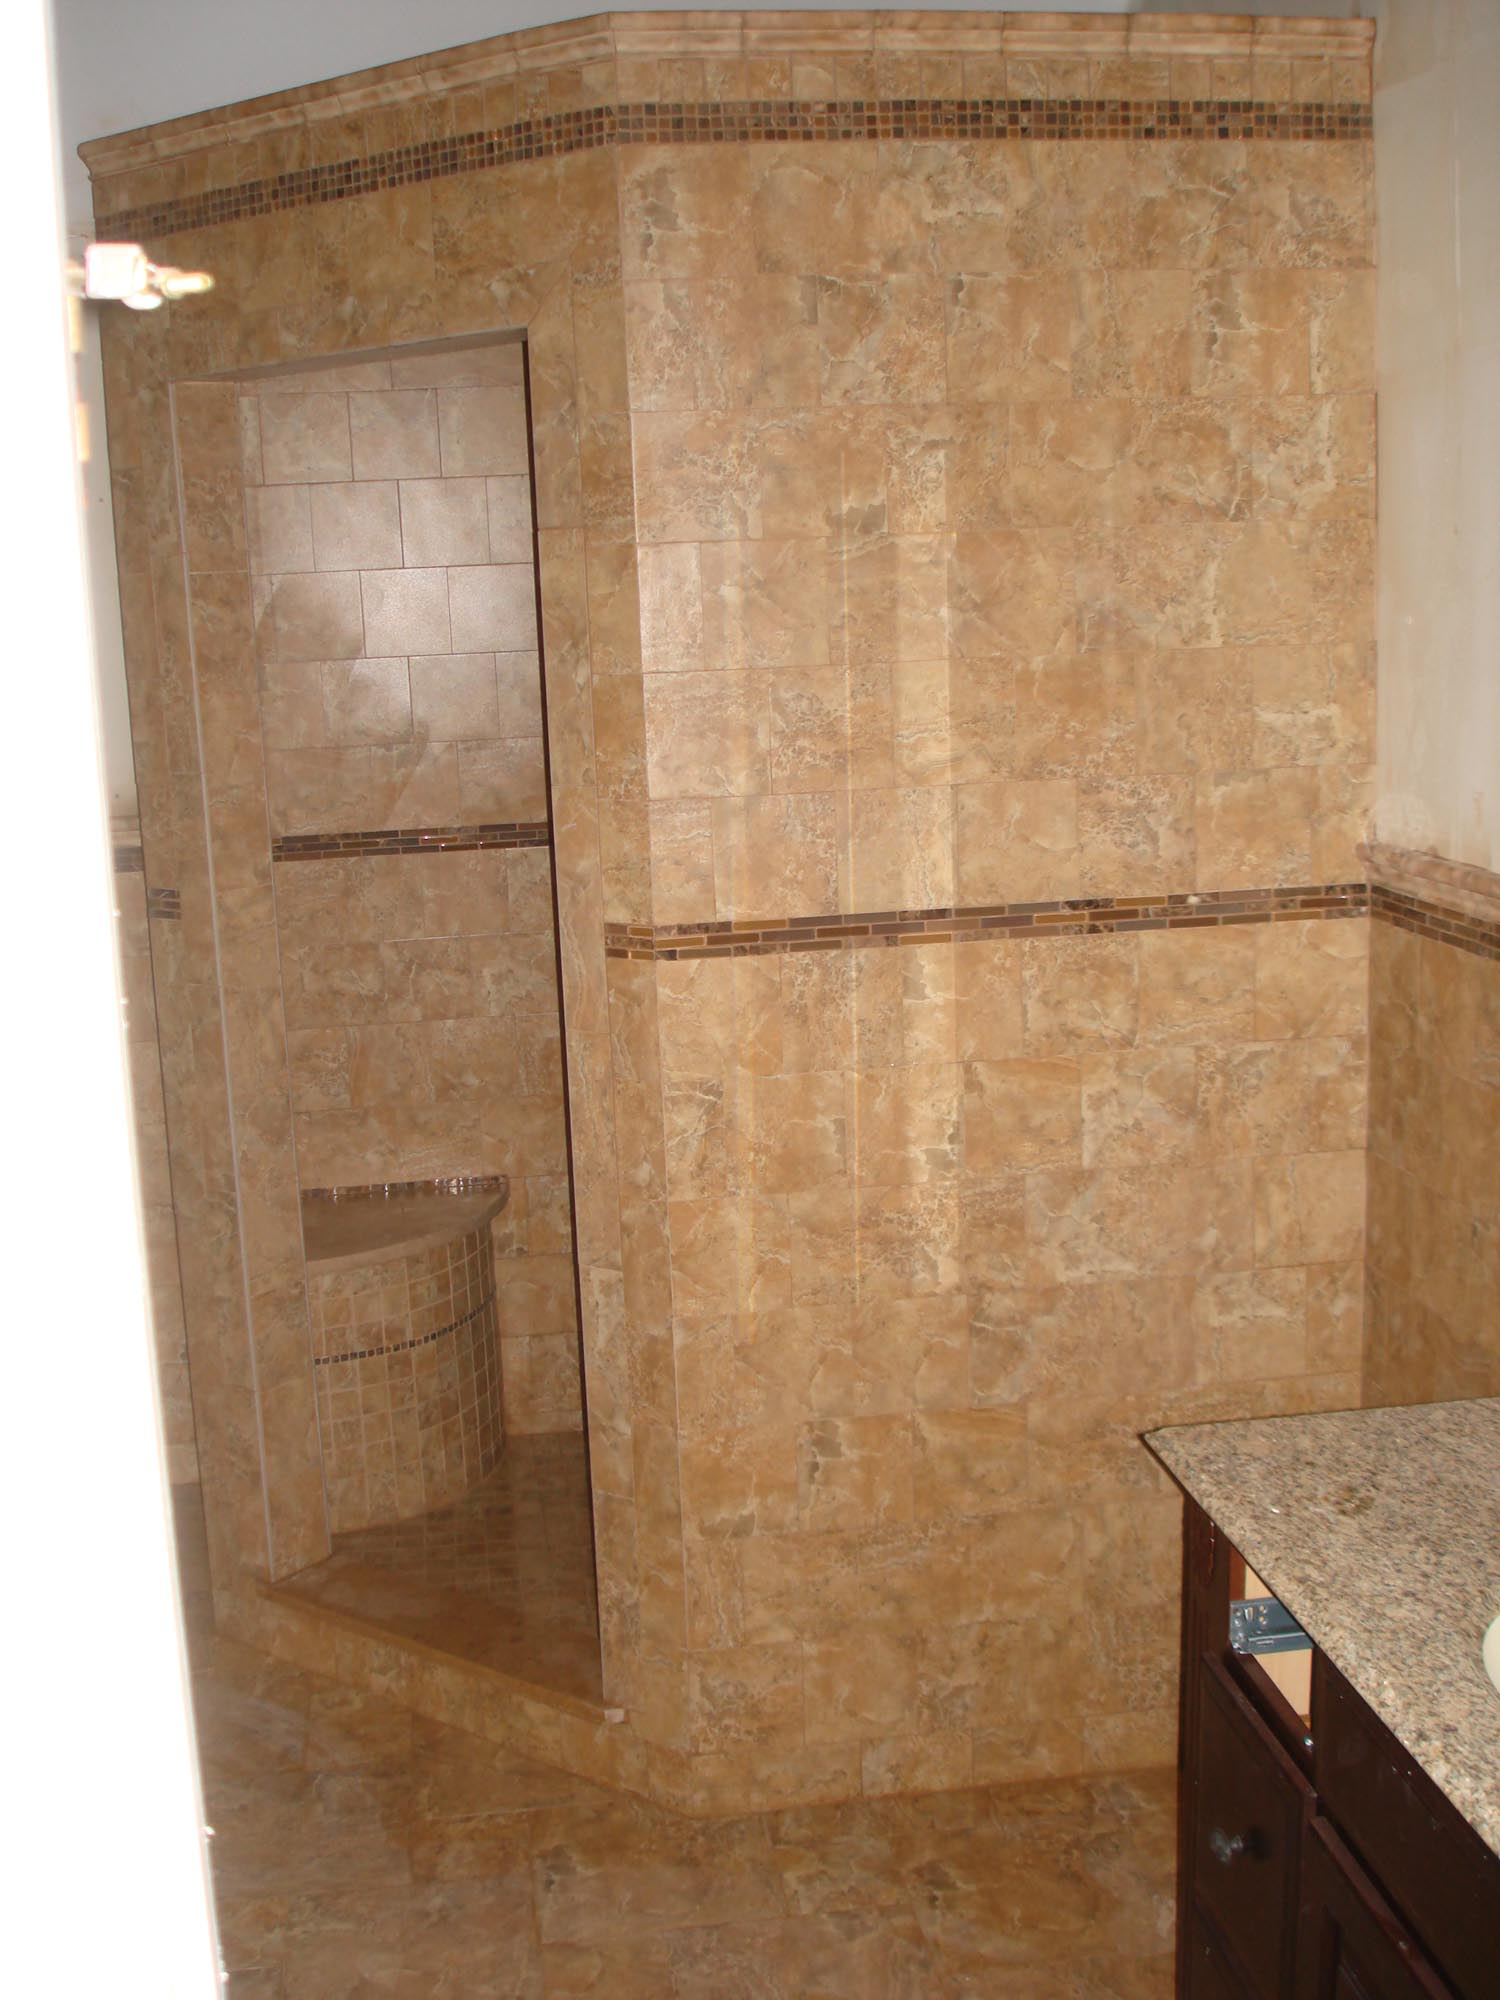 New Tile Shower Master Bath